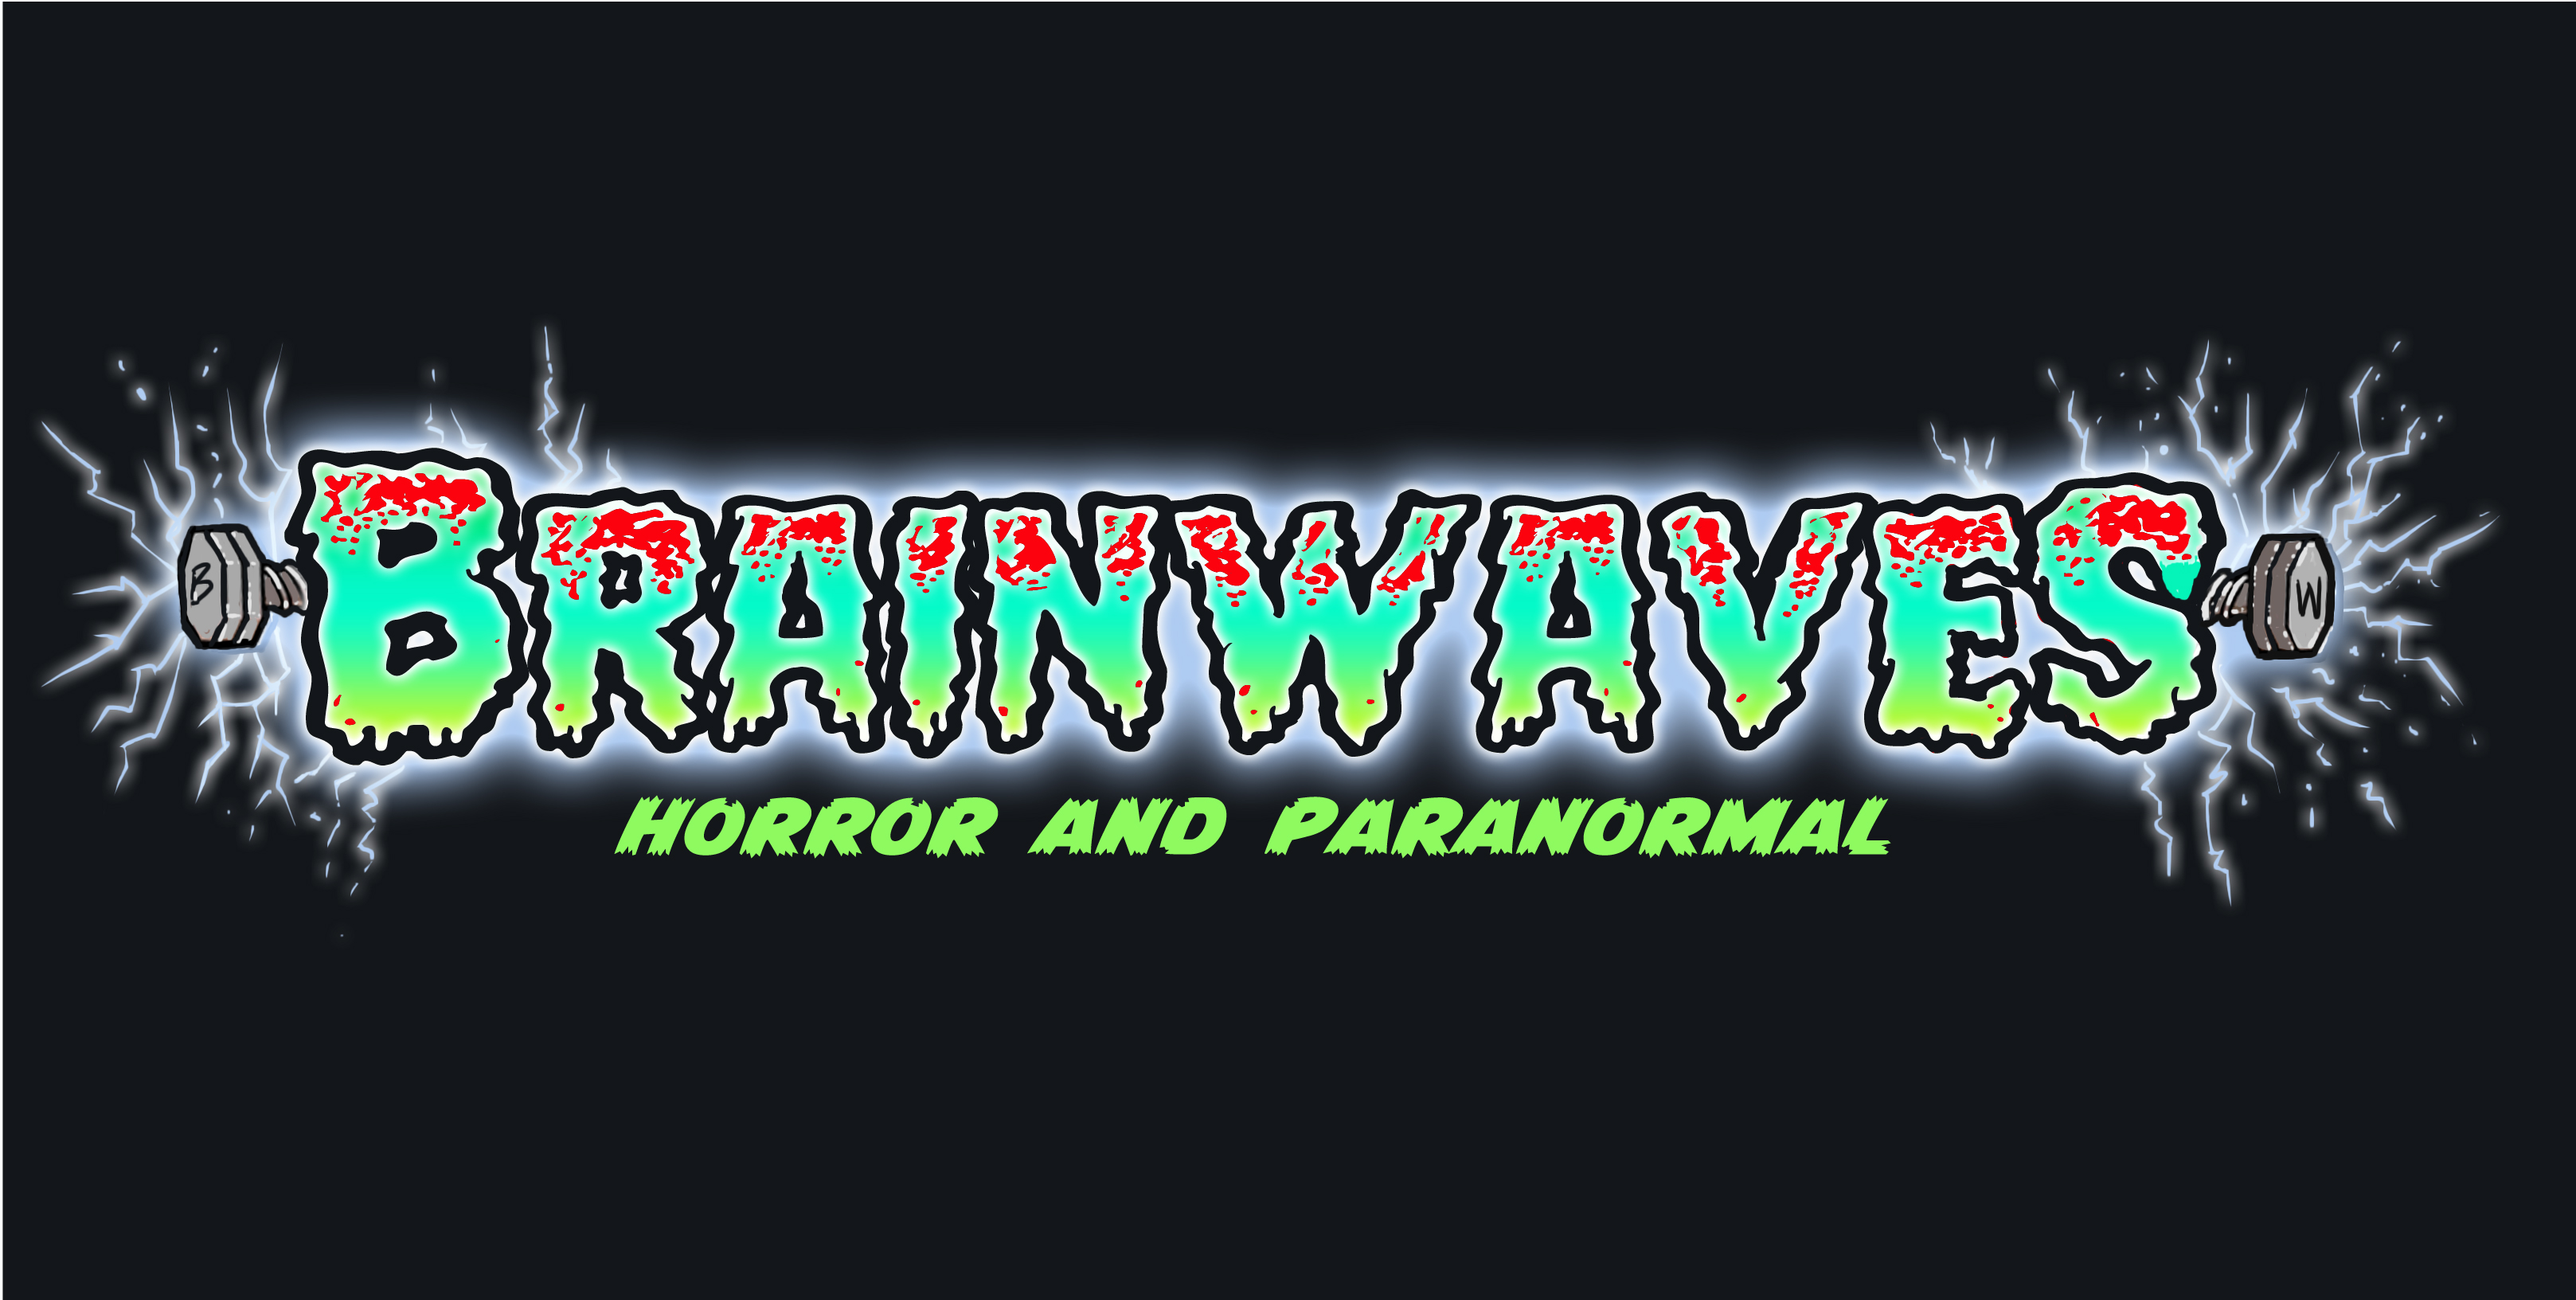 Brainwaves is creating Horror and Paranormal Entertainment | Patreon